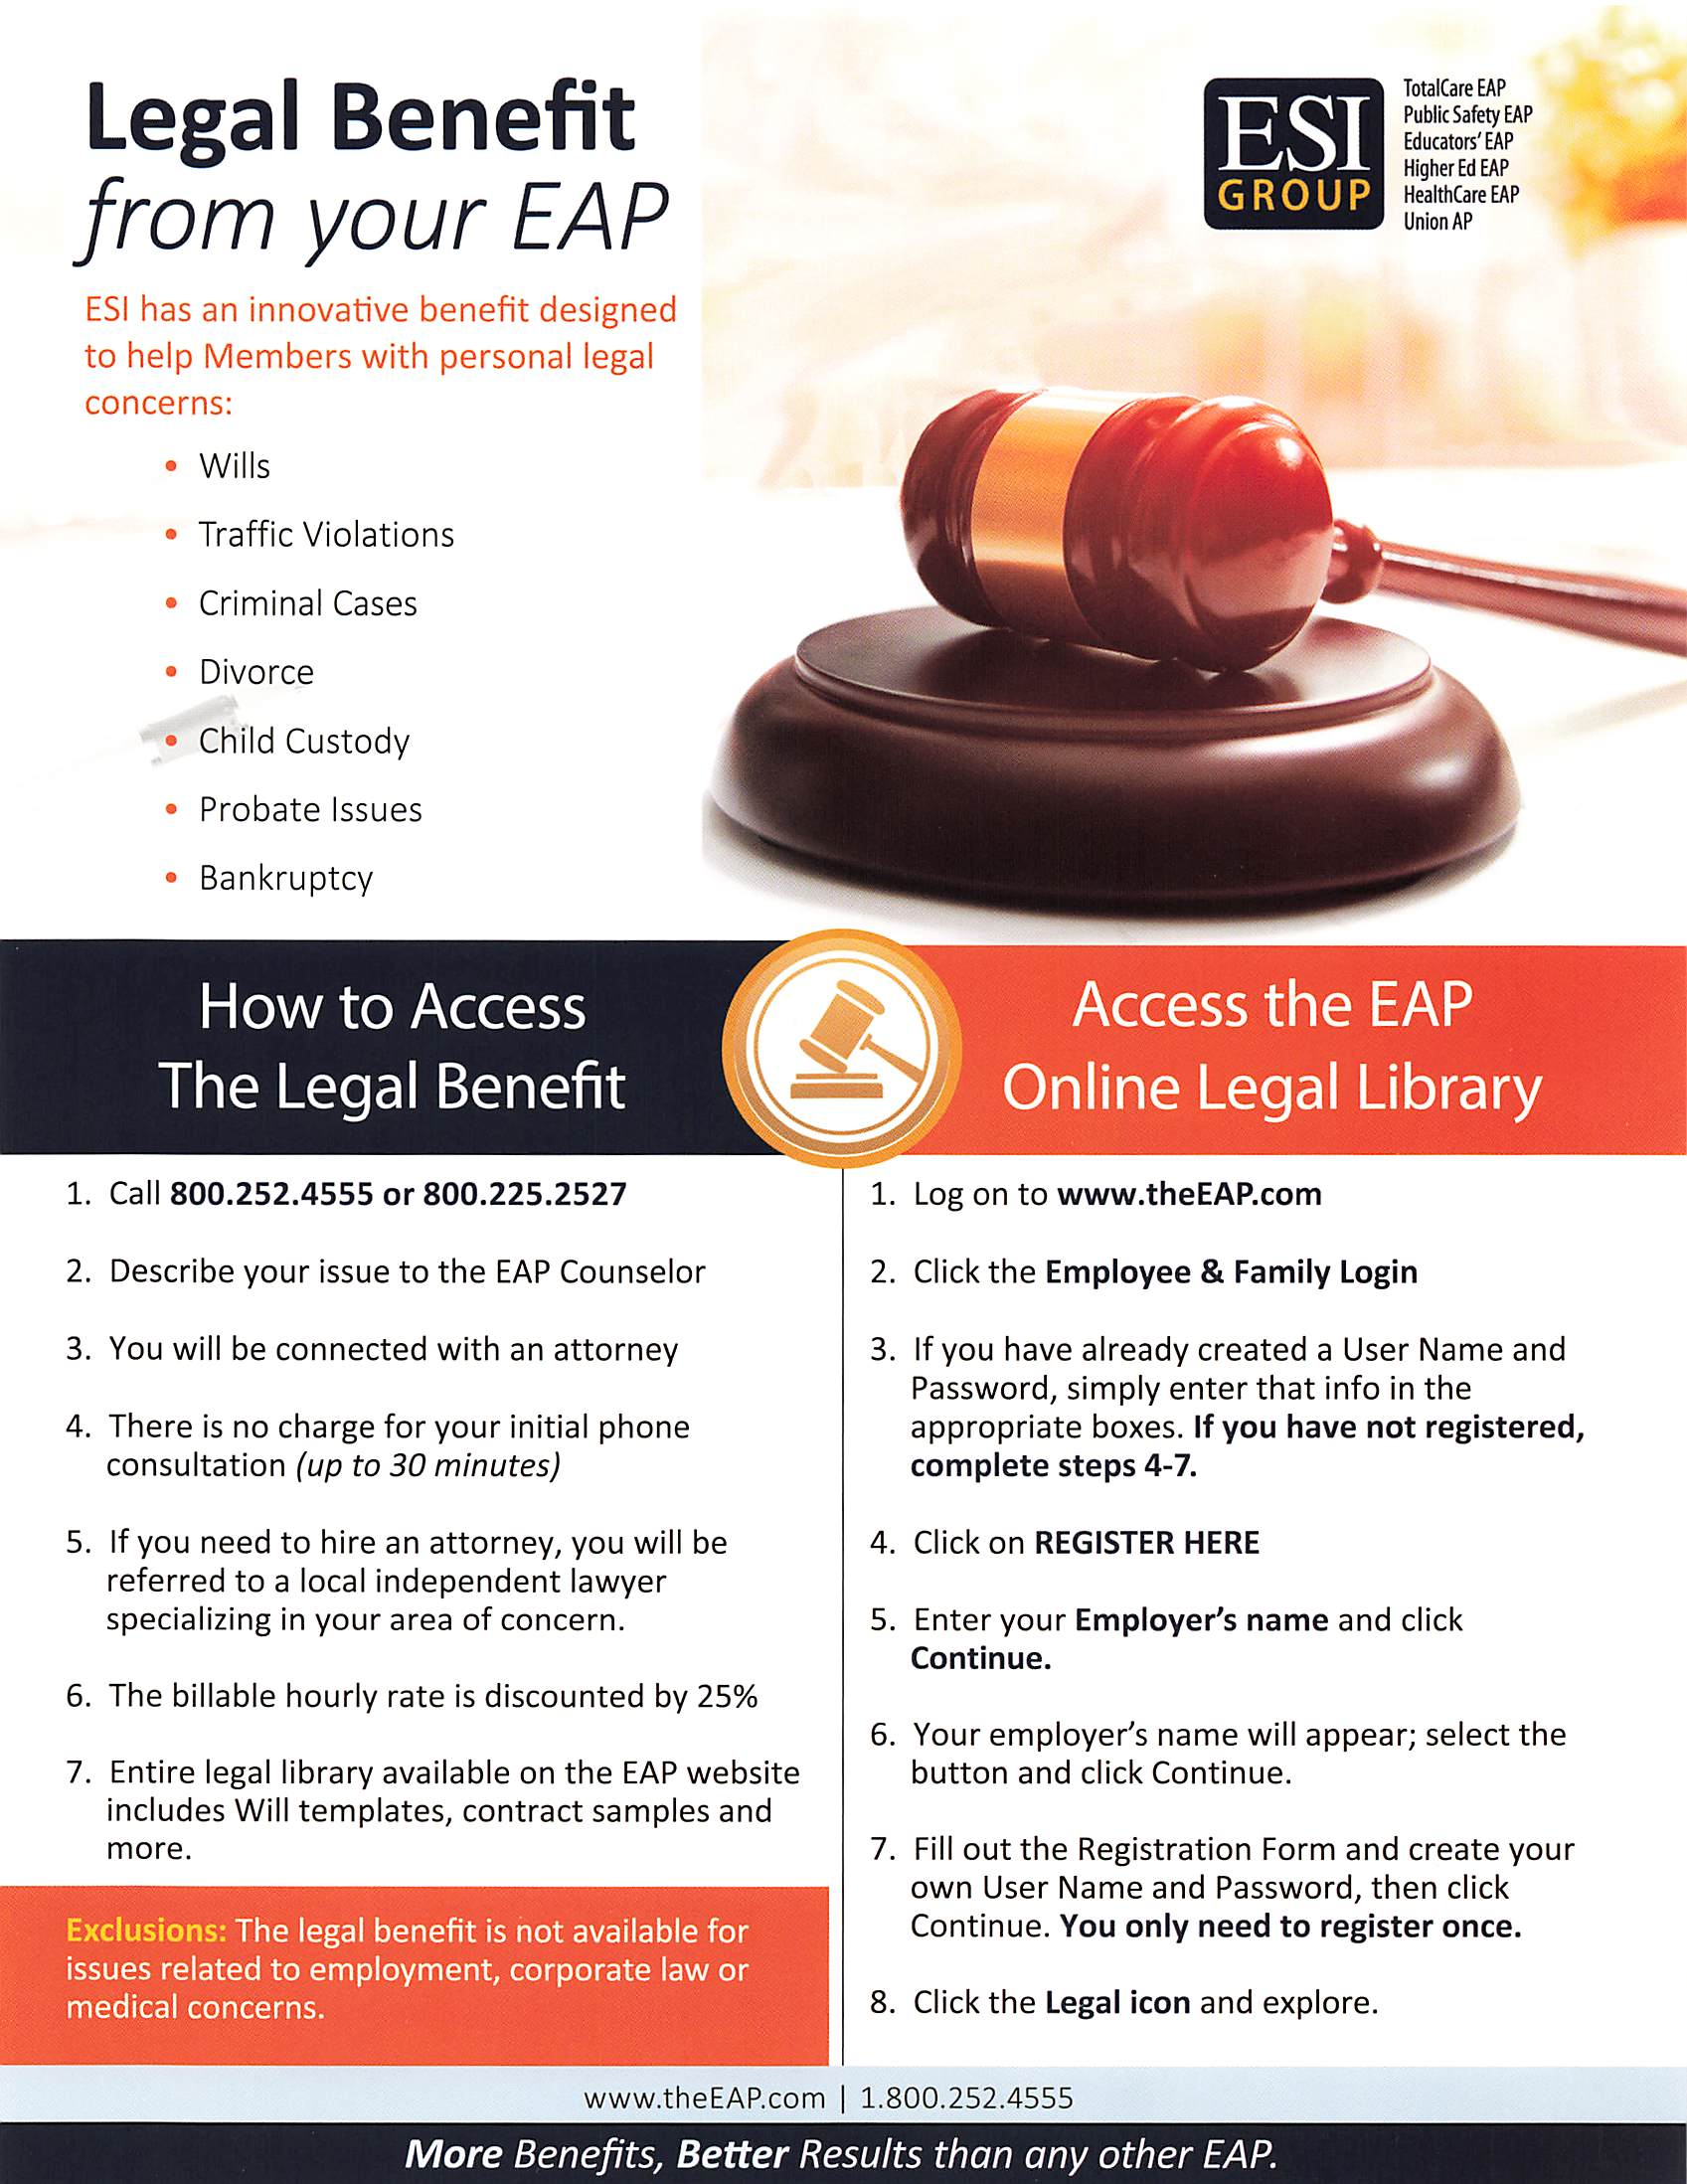 Legal Benefit available from EAP